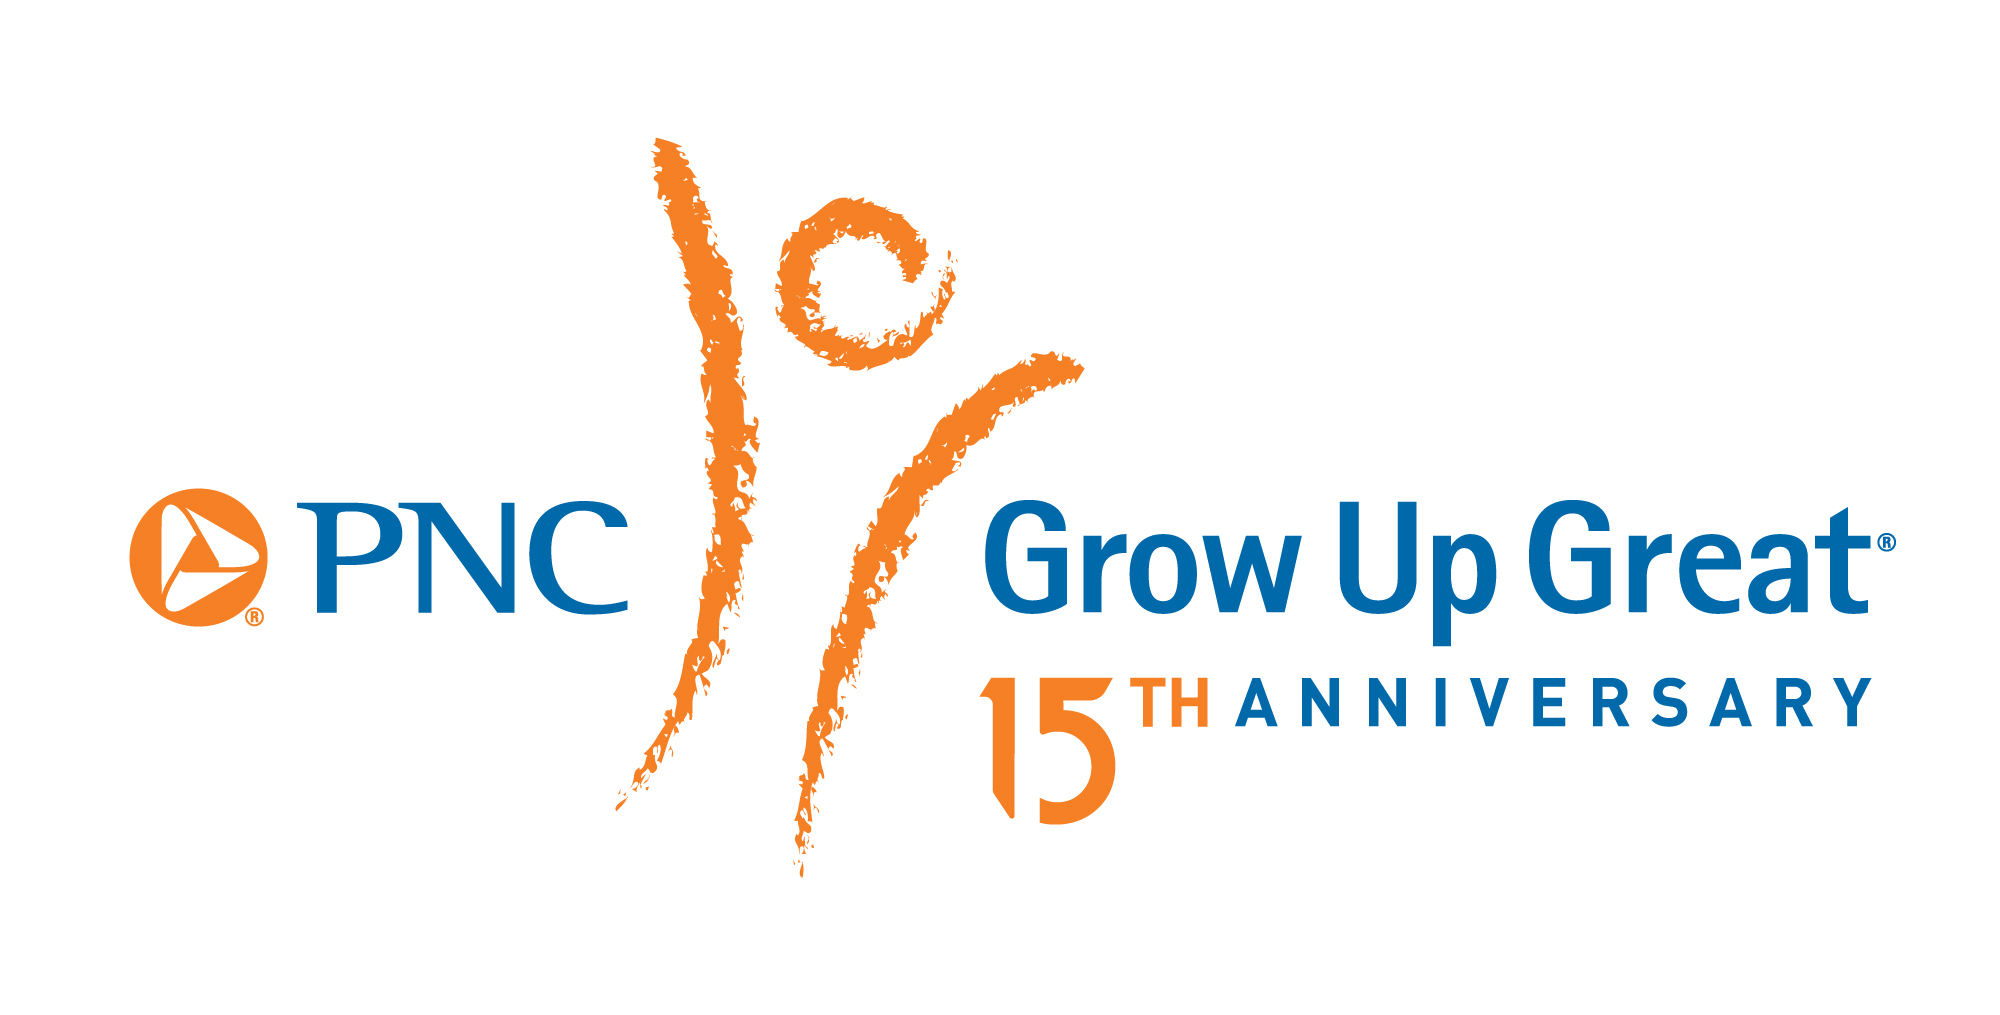 PNC Grow Up Great 15th Anniversary logo